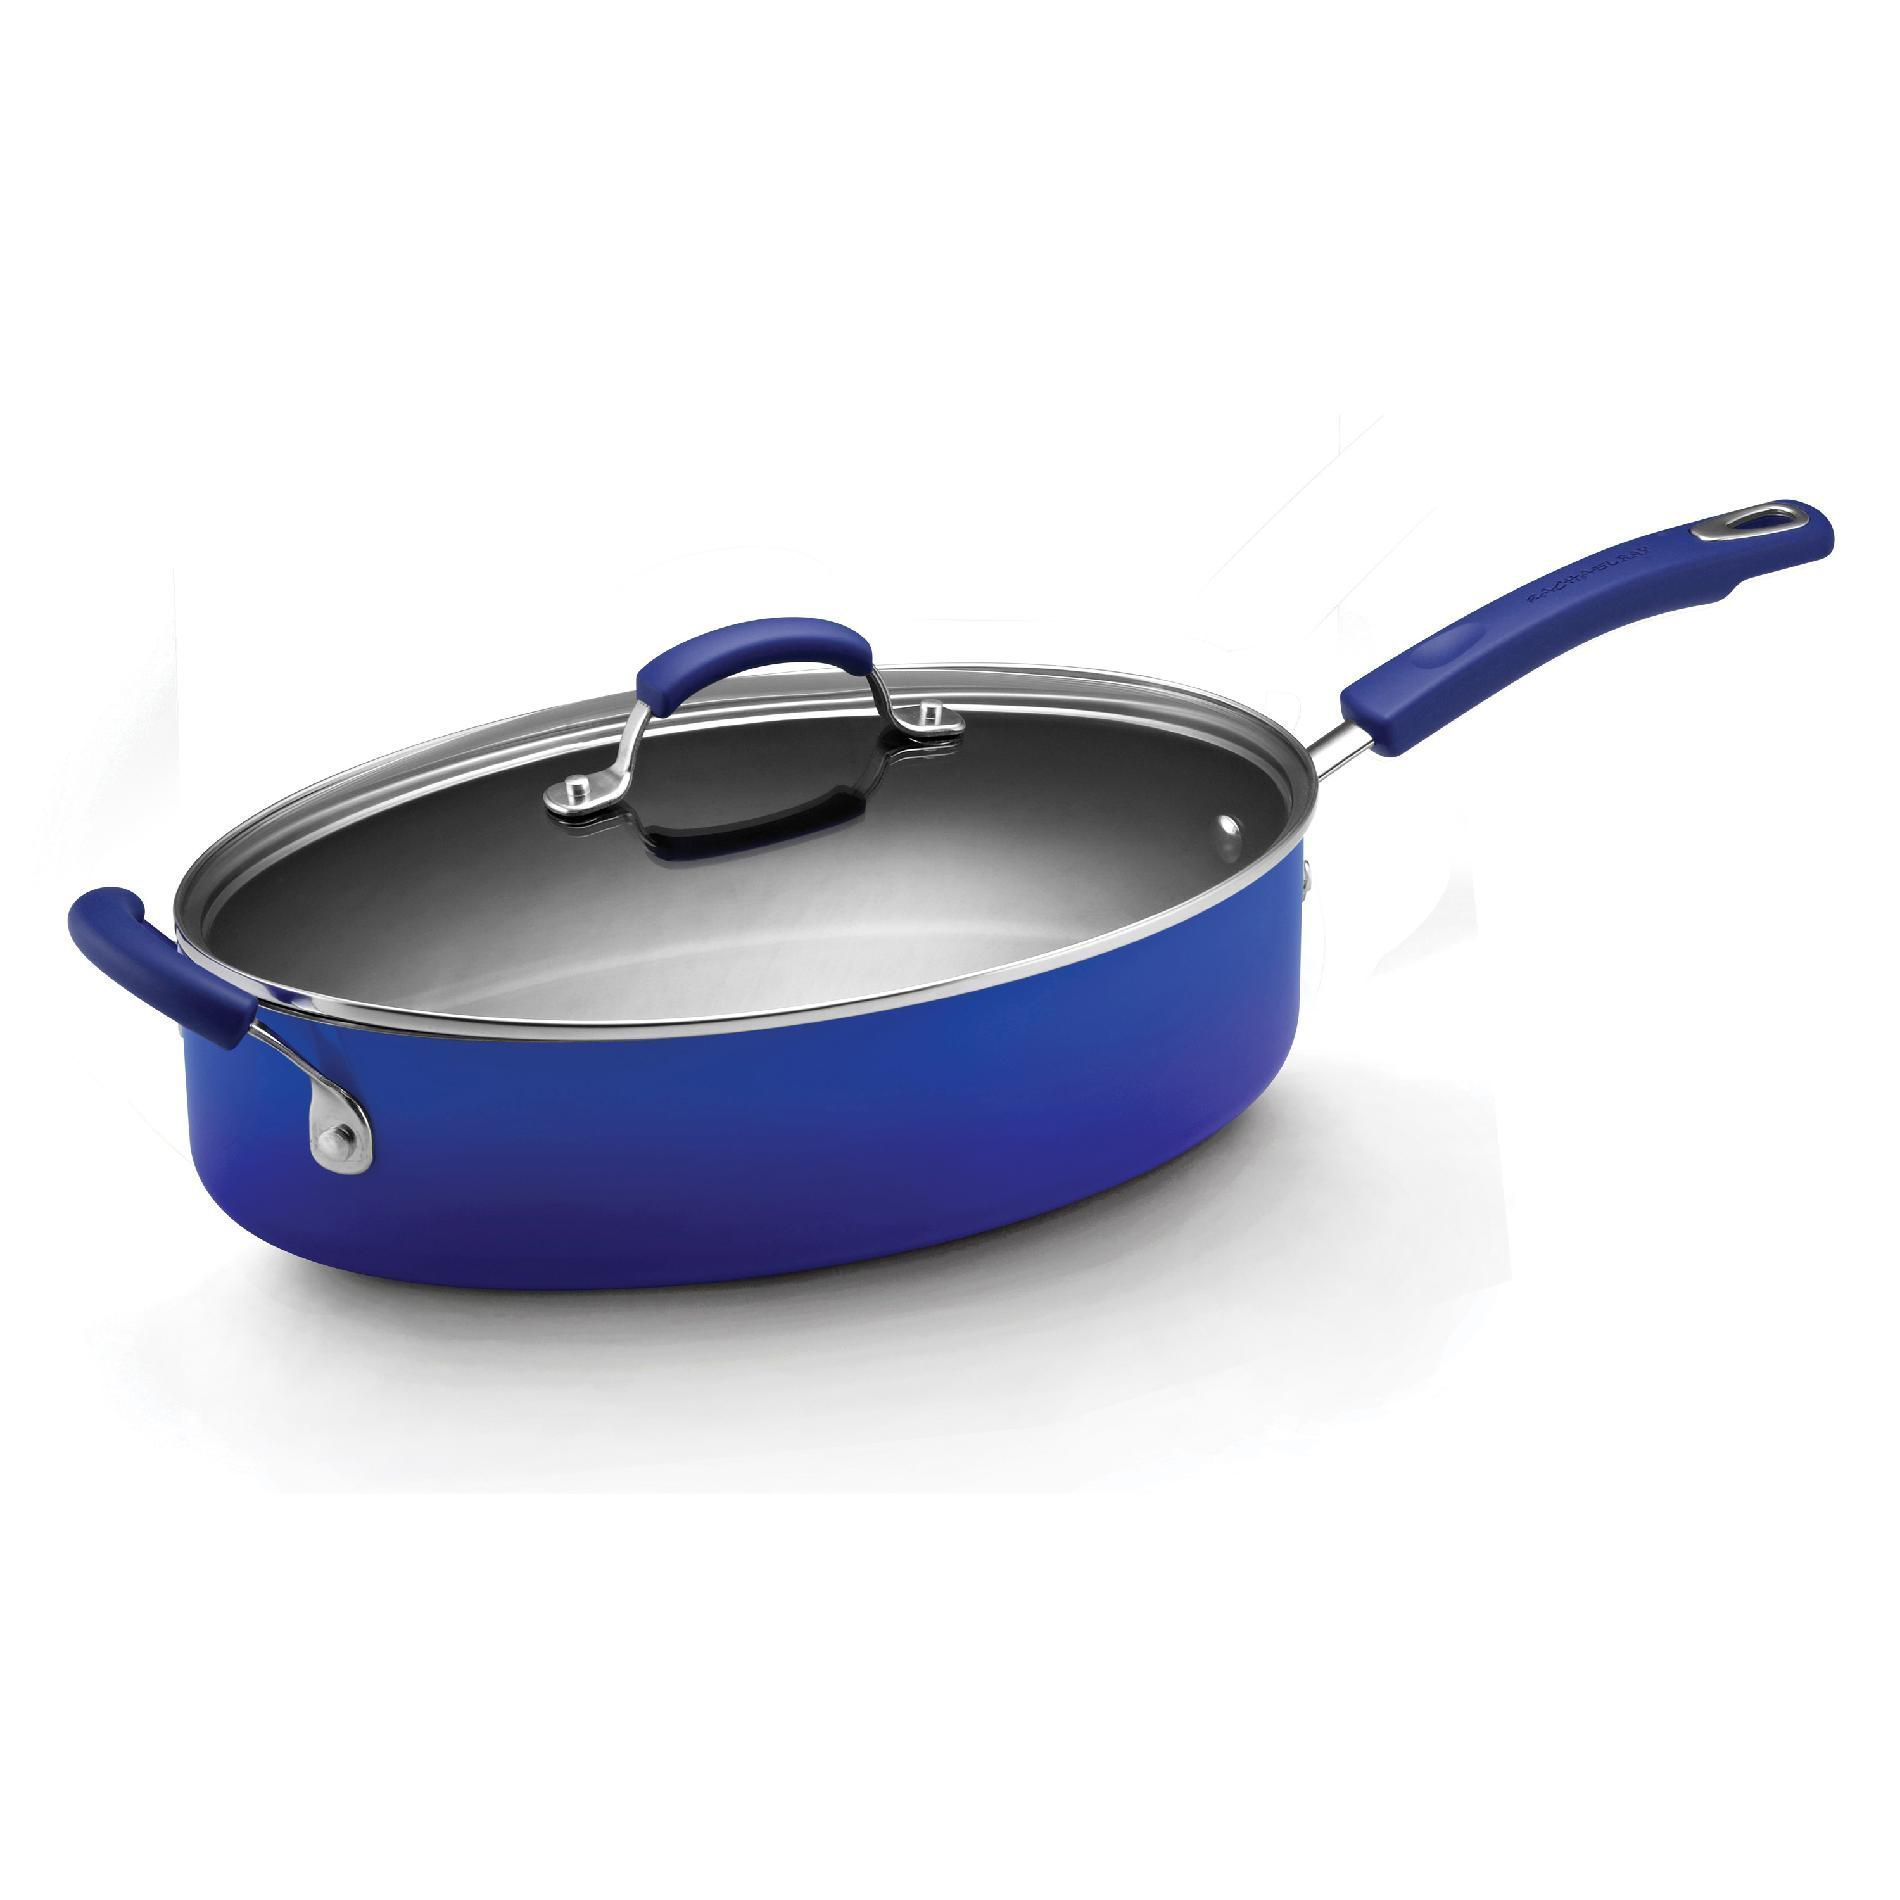 Rachael Ray 5 Quart Covered Oval Saute with Helper Handle, Blue Two Tone